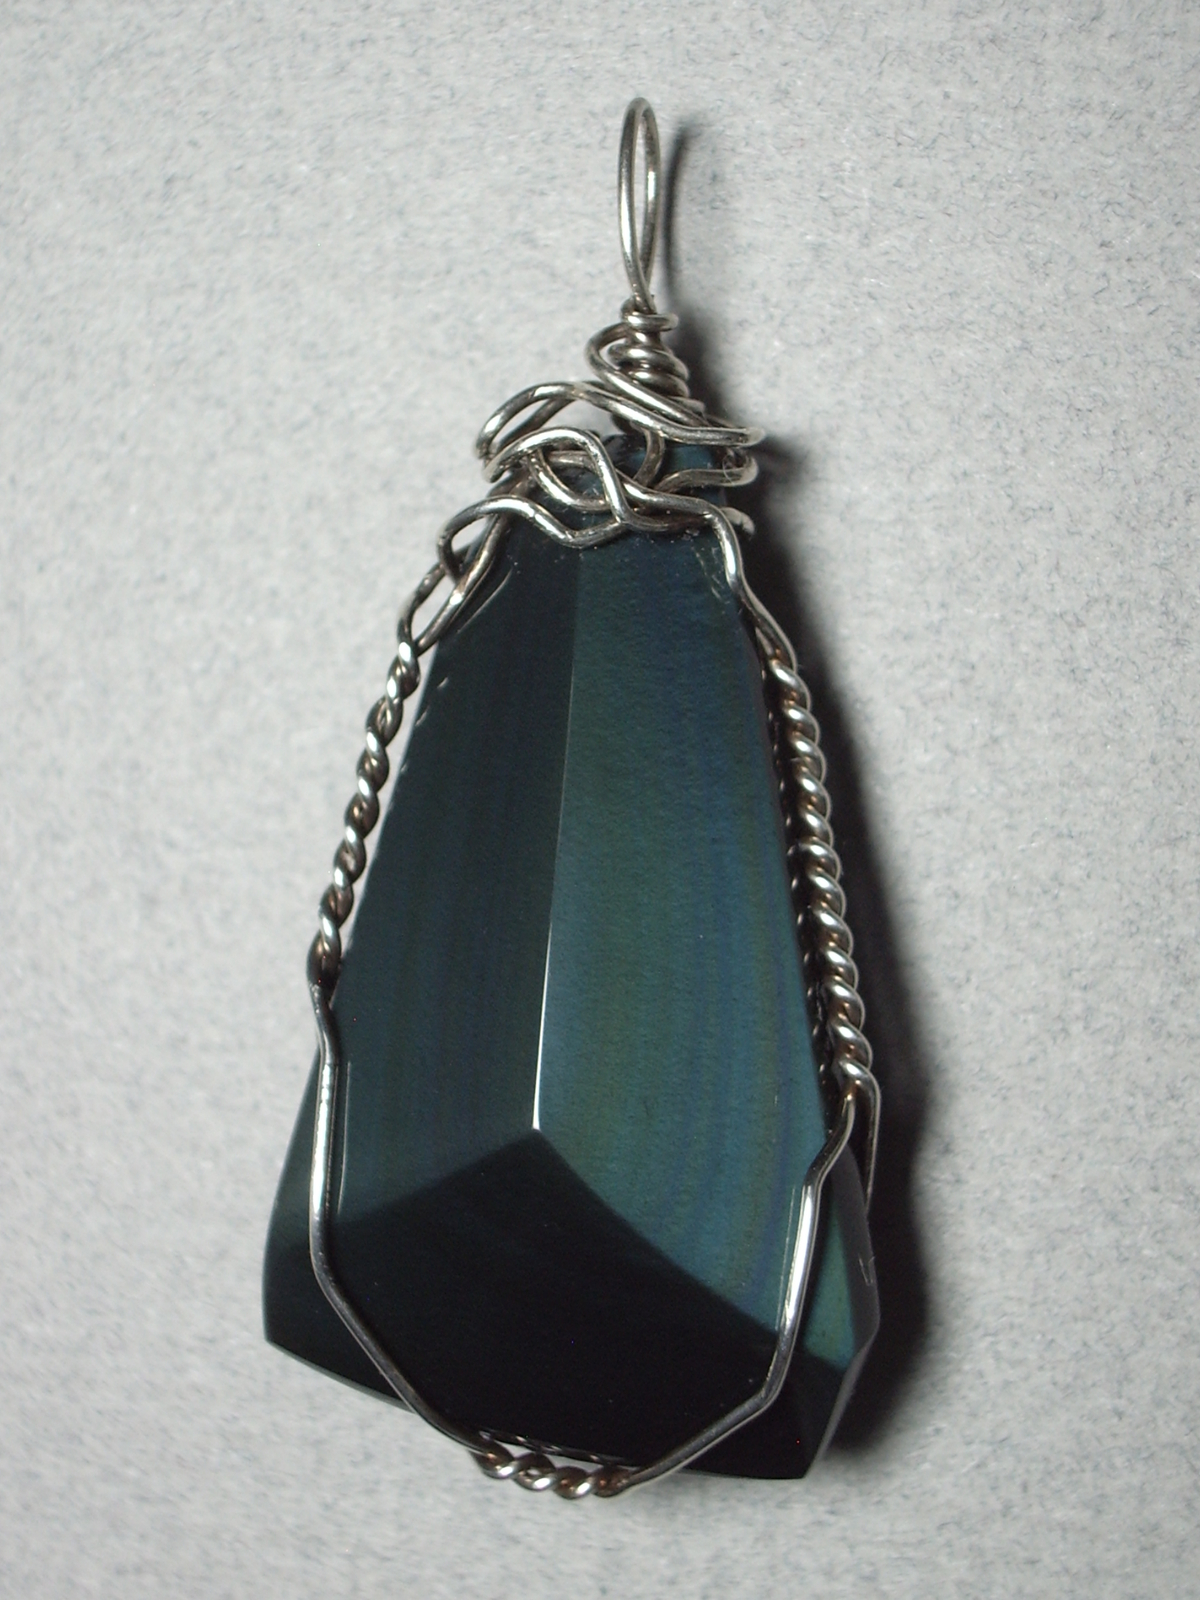 Primary image for .925 SS Wire Wrapped Rainbow Obsidian Pendant by Jemel